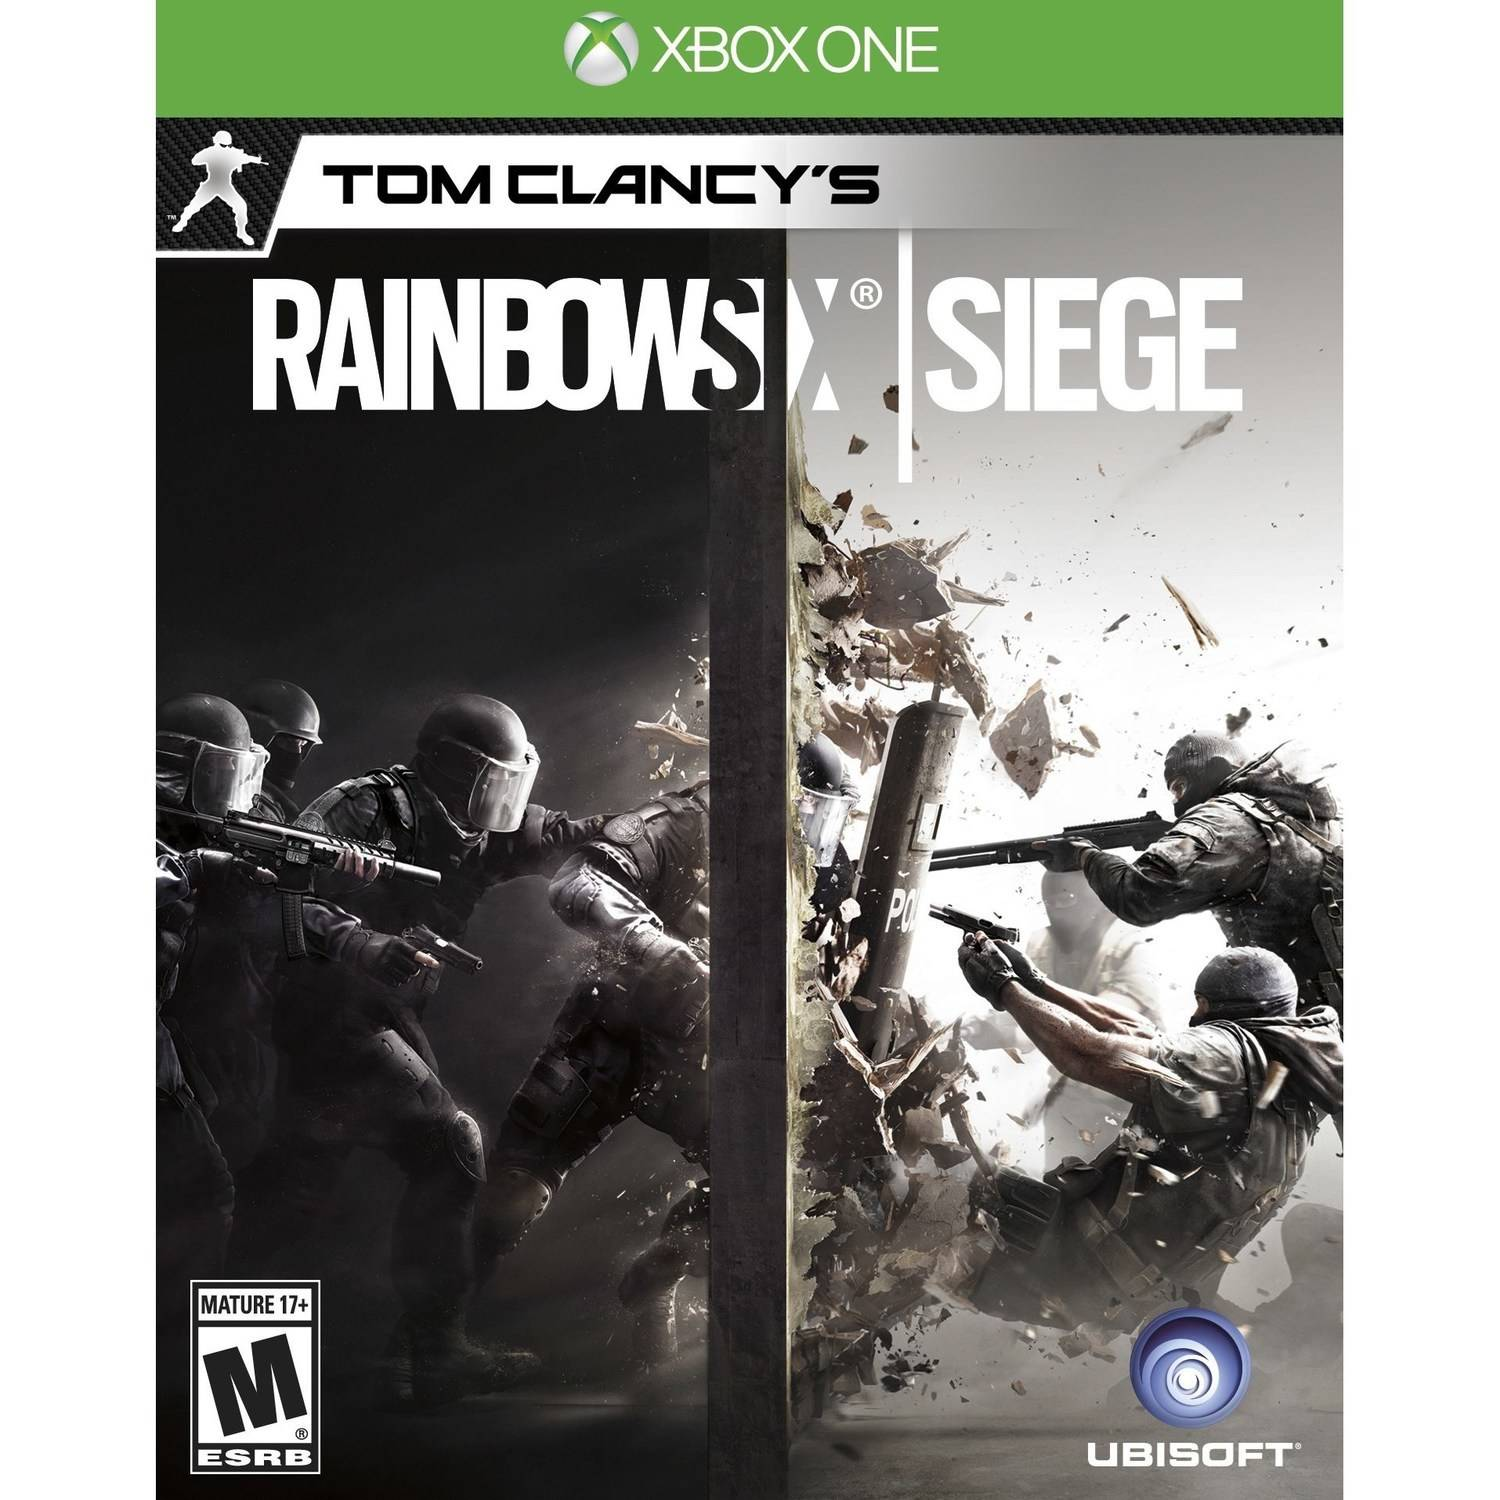 Rainbow Six Siege (Xbox One) - Pre-Owned